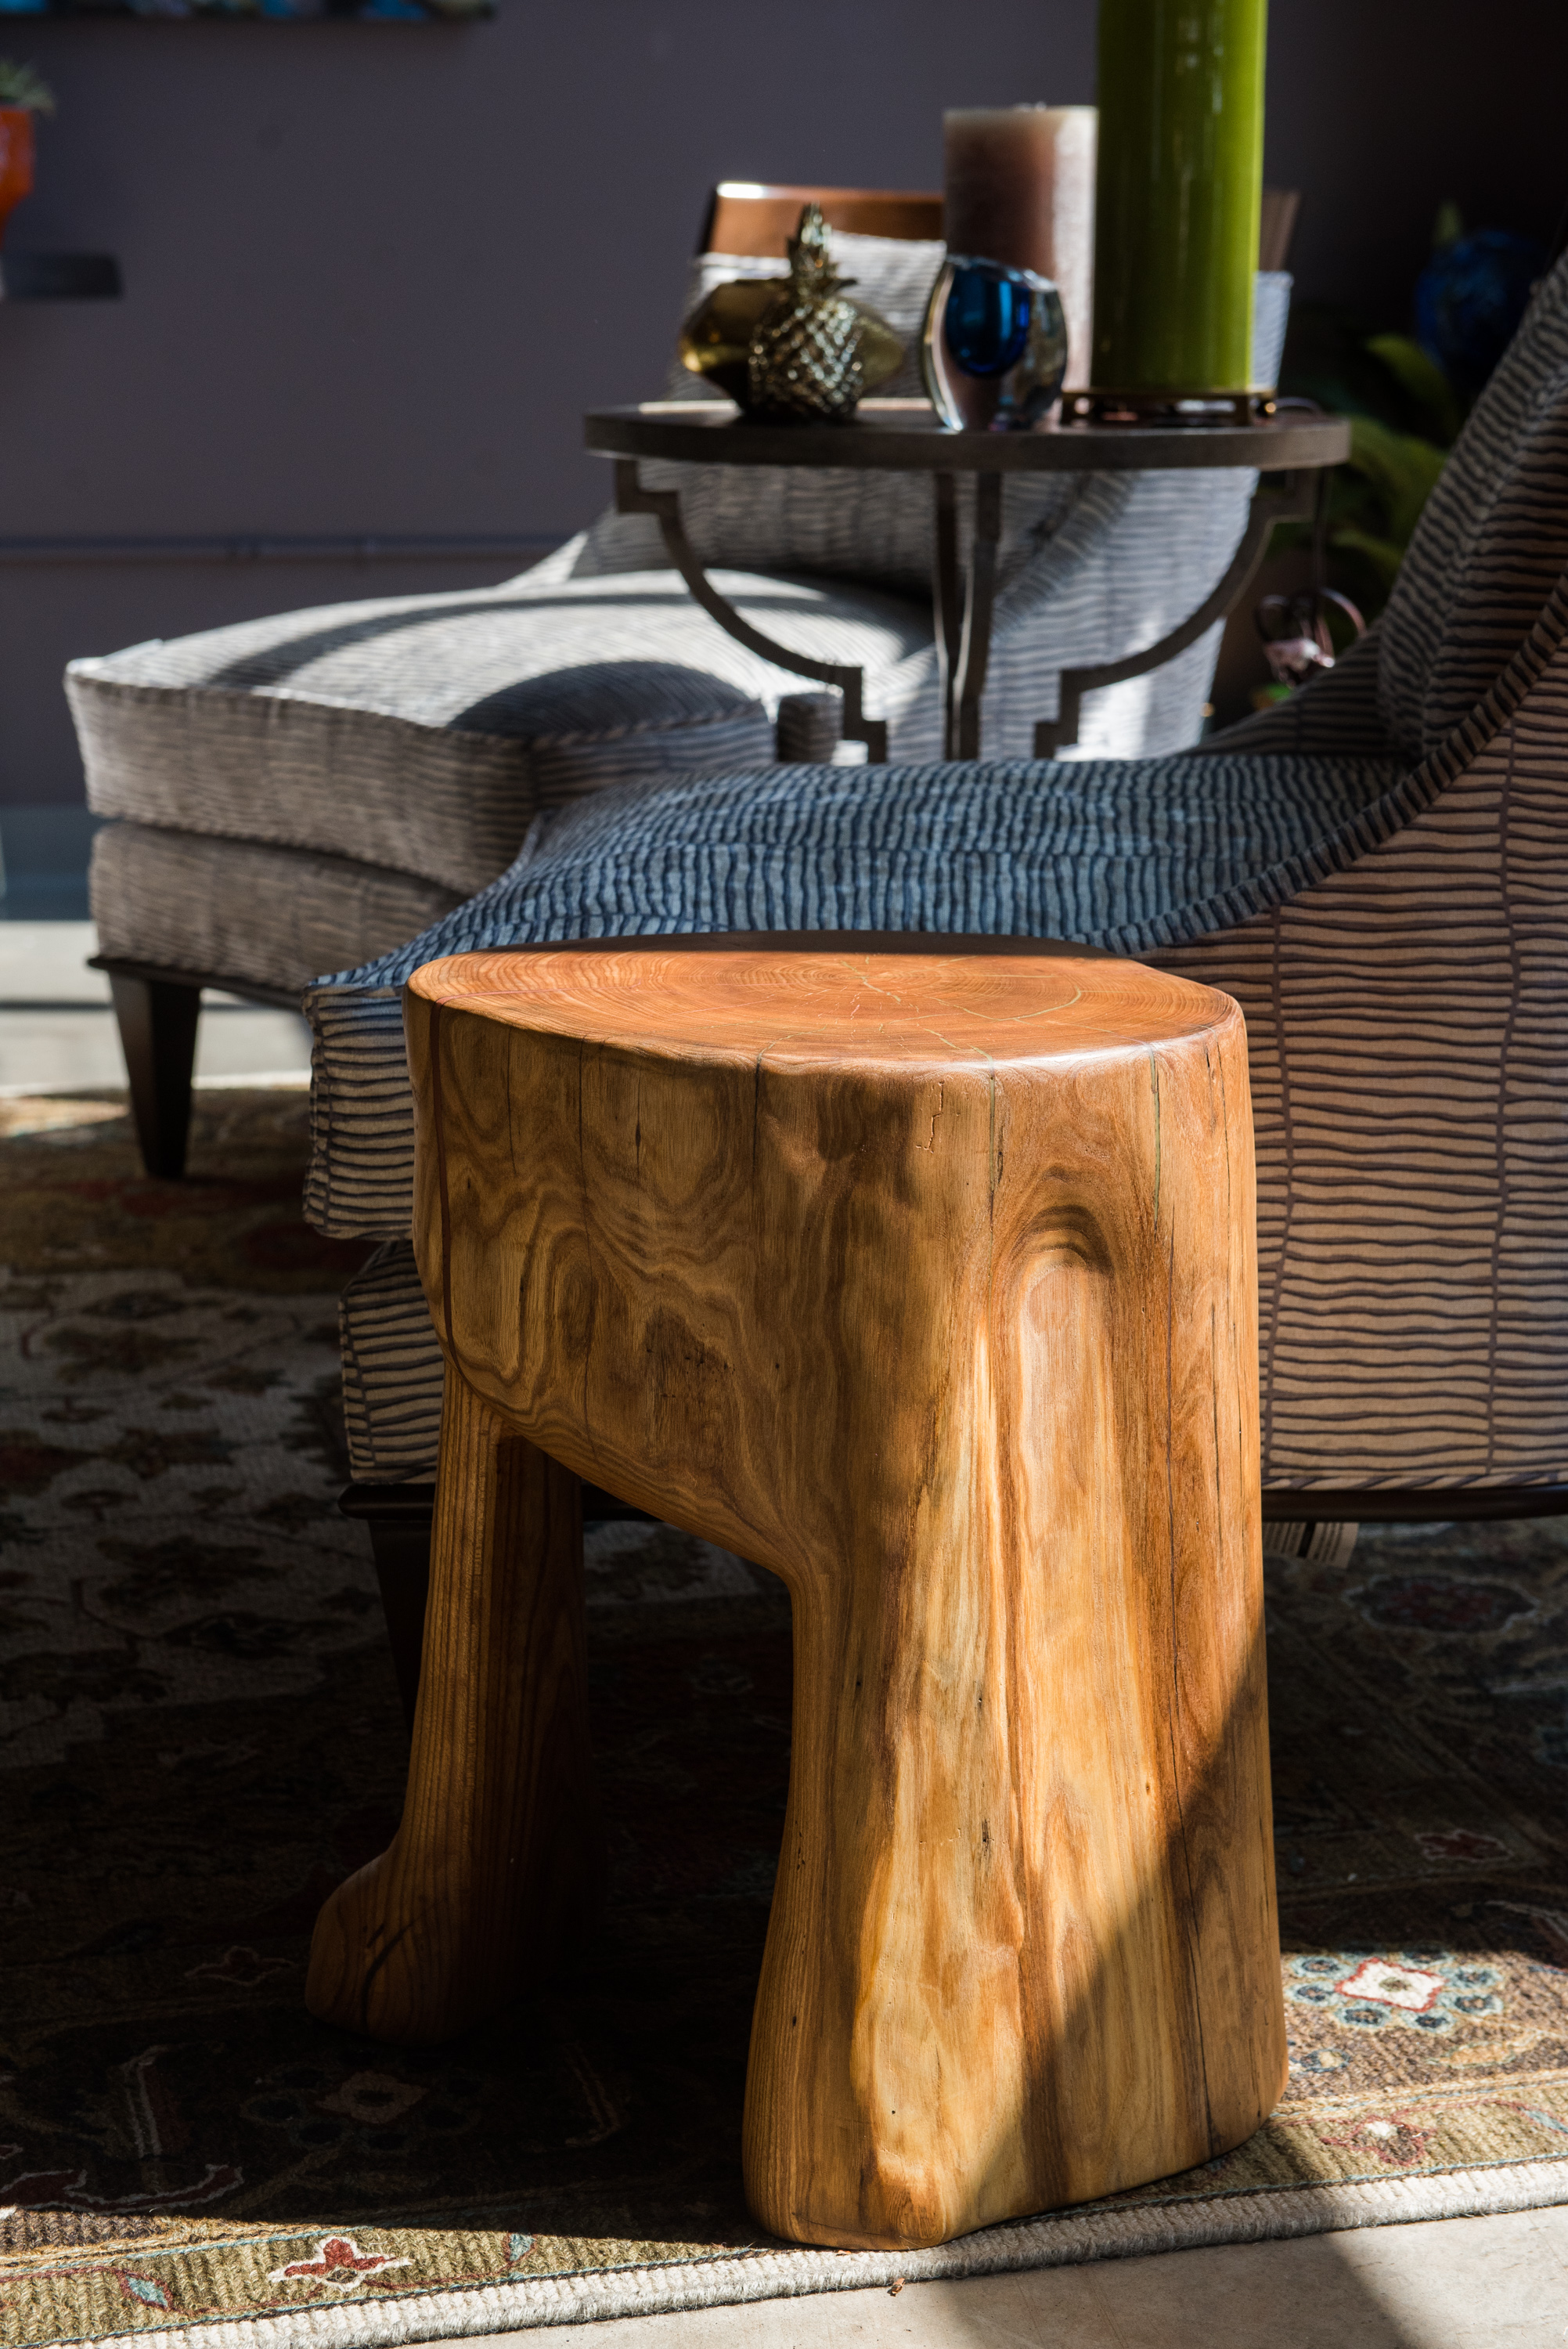 Wood End Table - Cherry wood end table carefully crafted and carved from a single log locally harvested. -